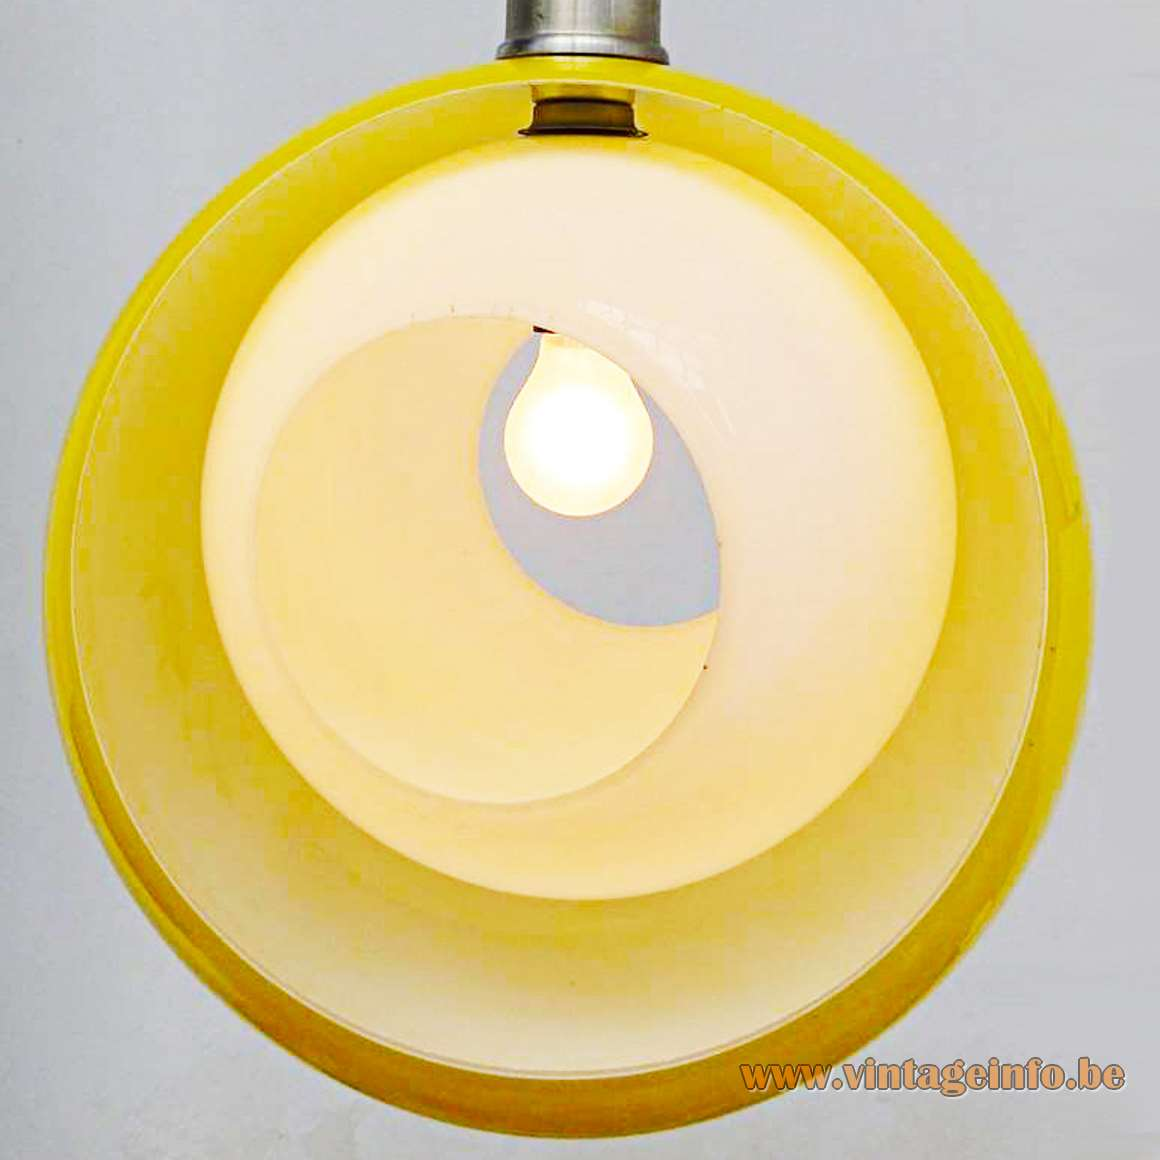 AV Mazzega Eclipse Pendant Lamp - yellow and white